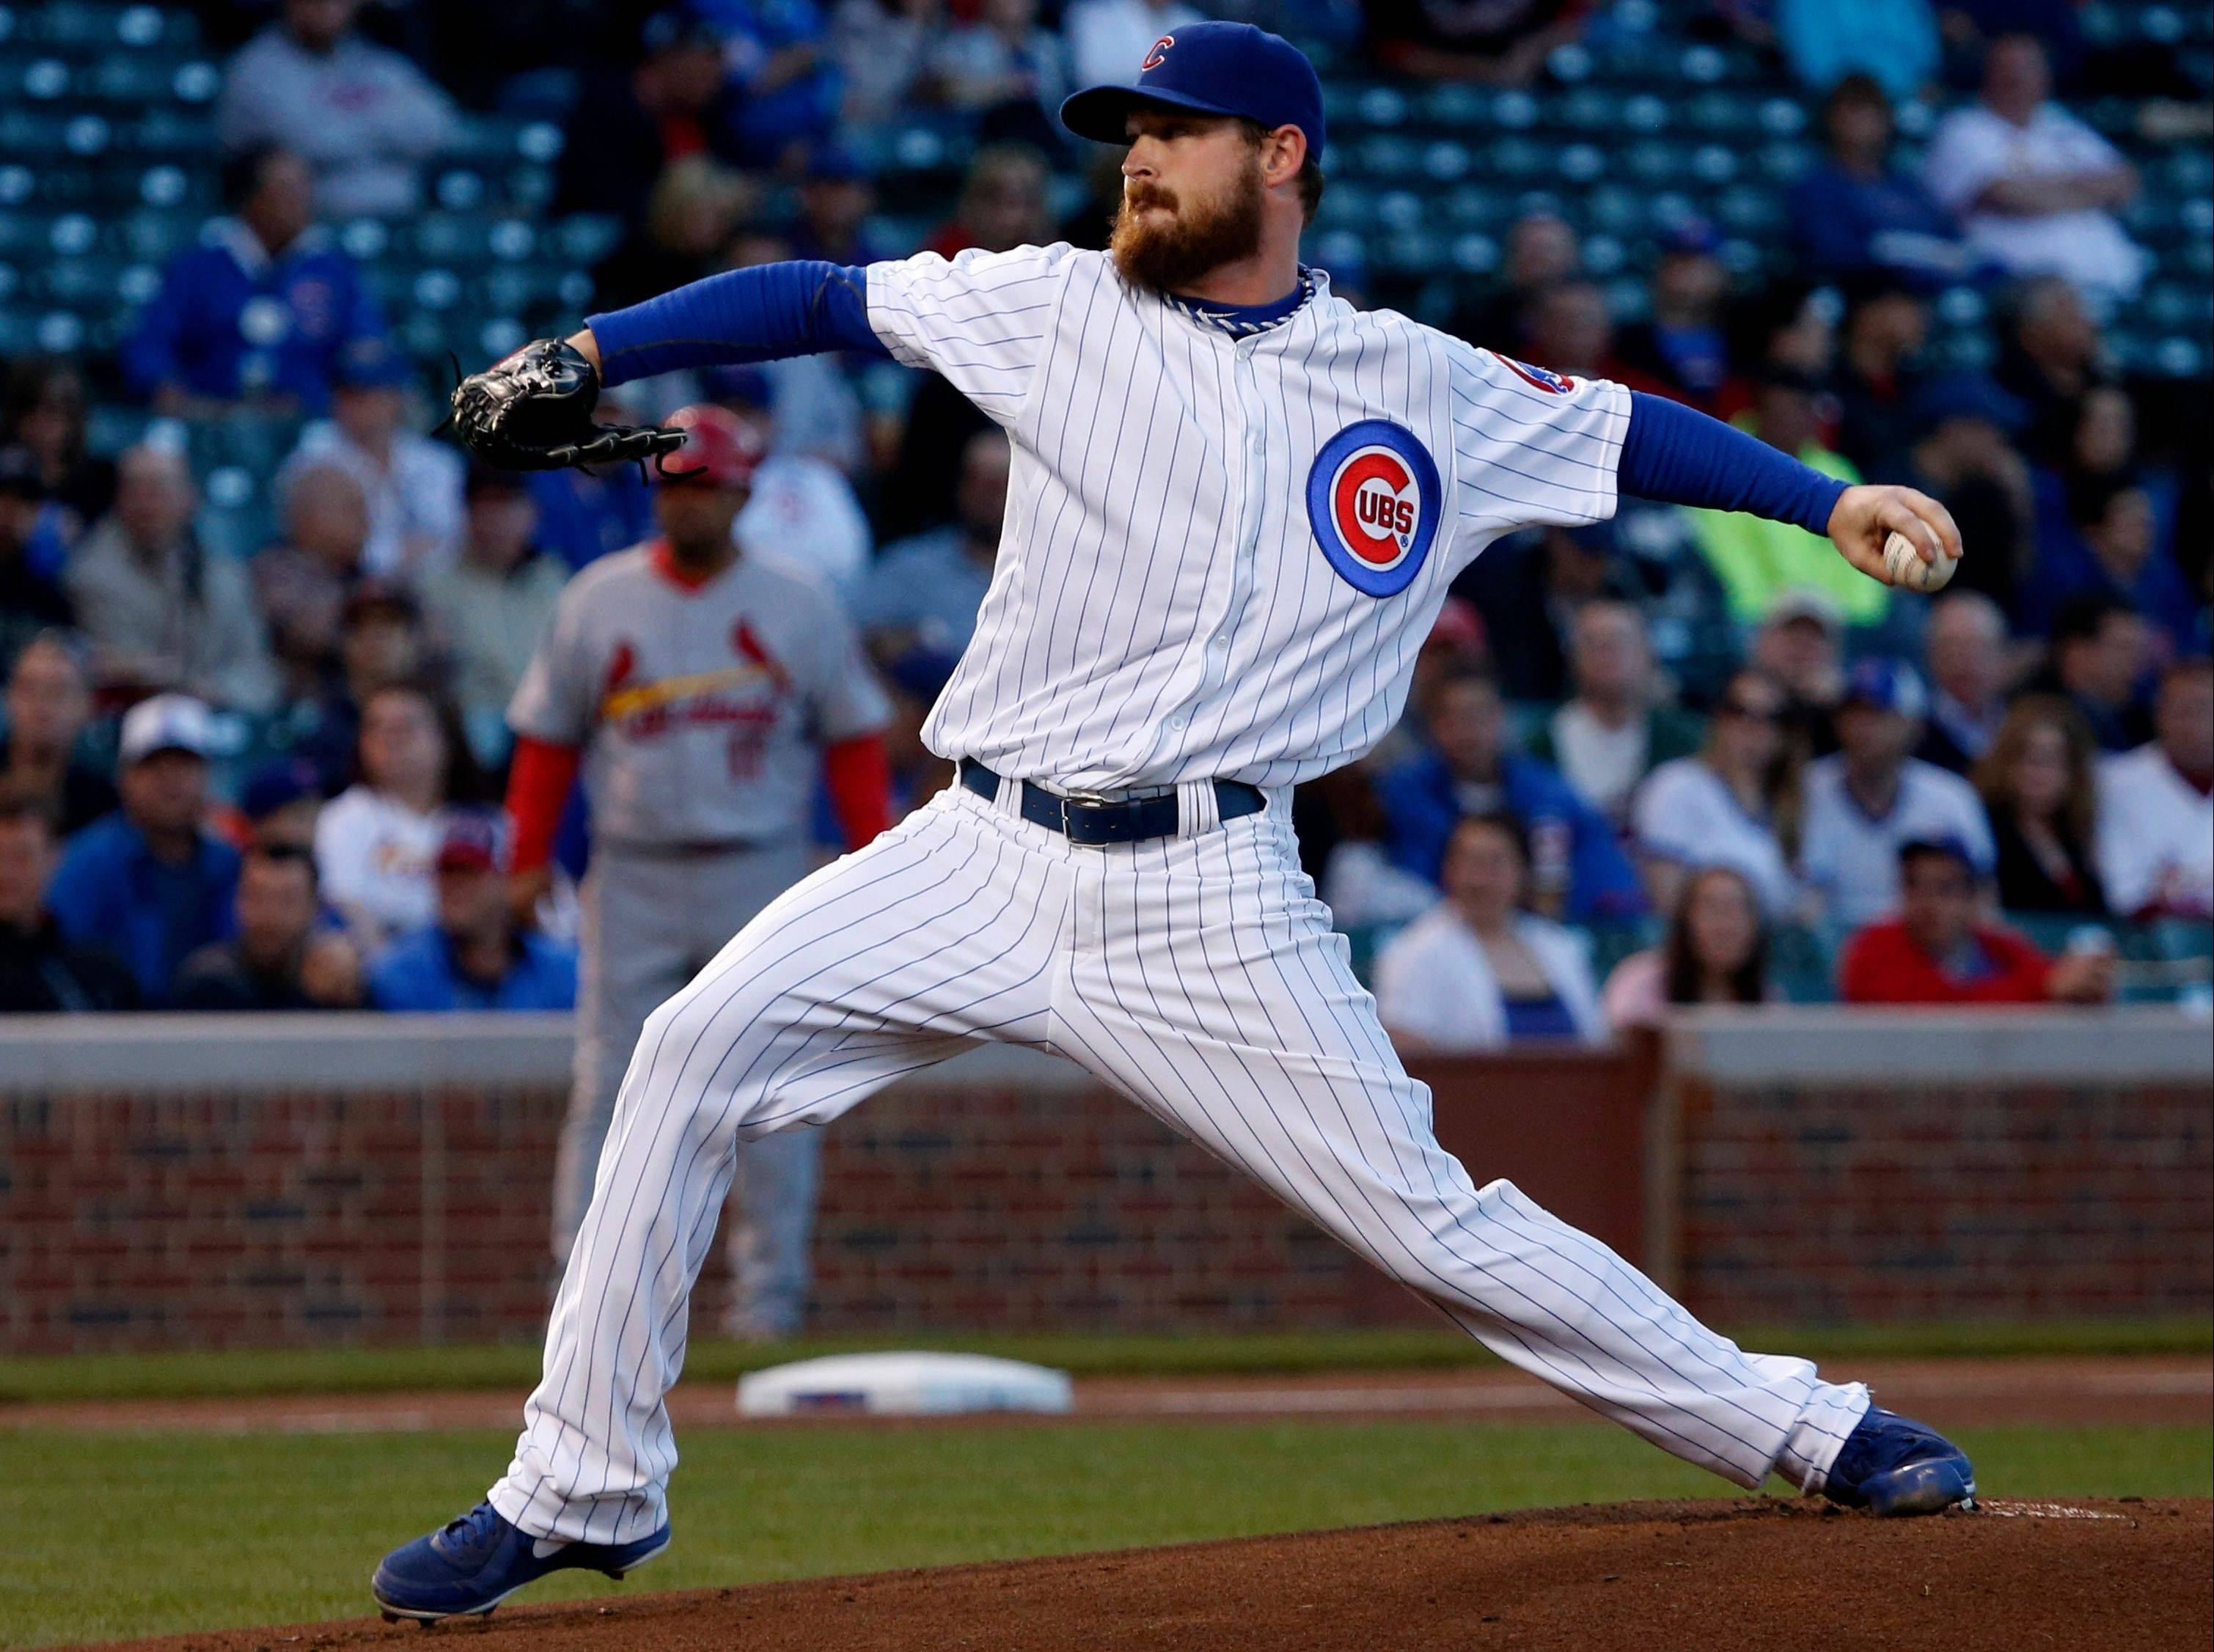 Cubs starting pitcher Travis Wood delivers during Tuesday's first inning at Wrigley Field.